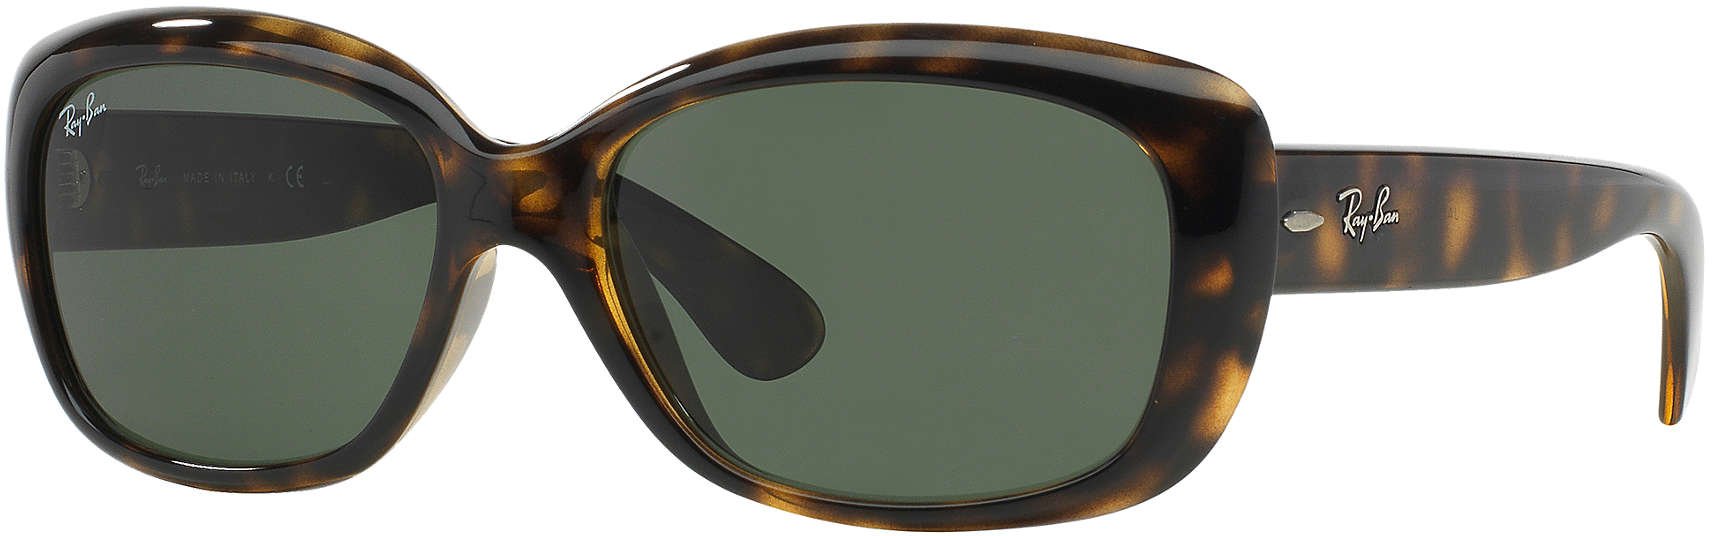 5ee513bff9 Ray-Ban Jackie OHH RB4101 Sunglasses with No-Line Progressive Rx  Prescription Lenses